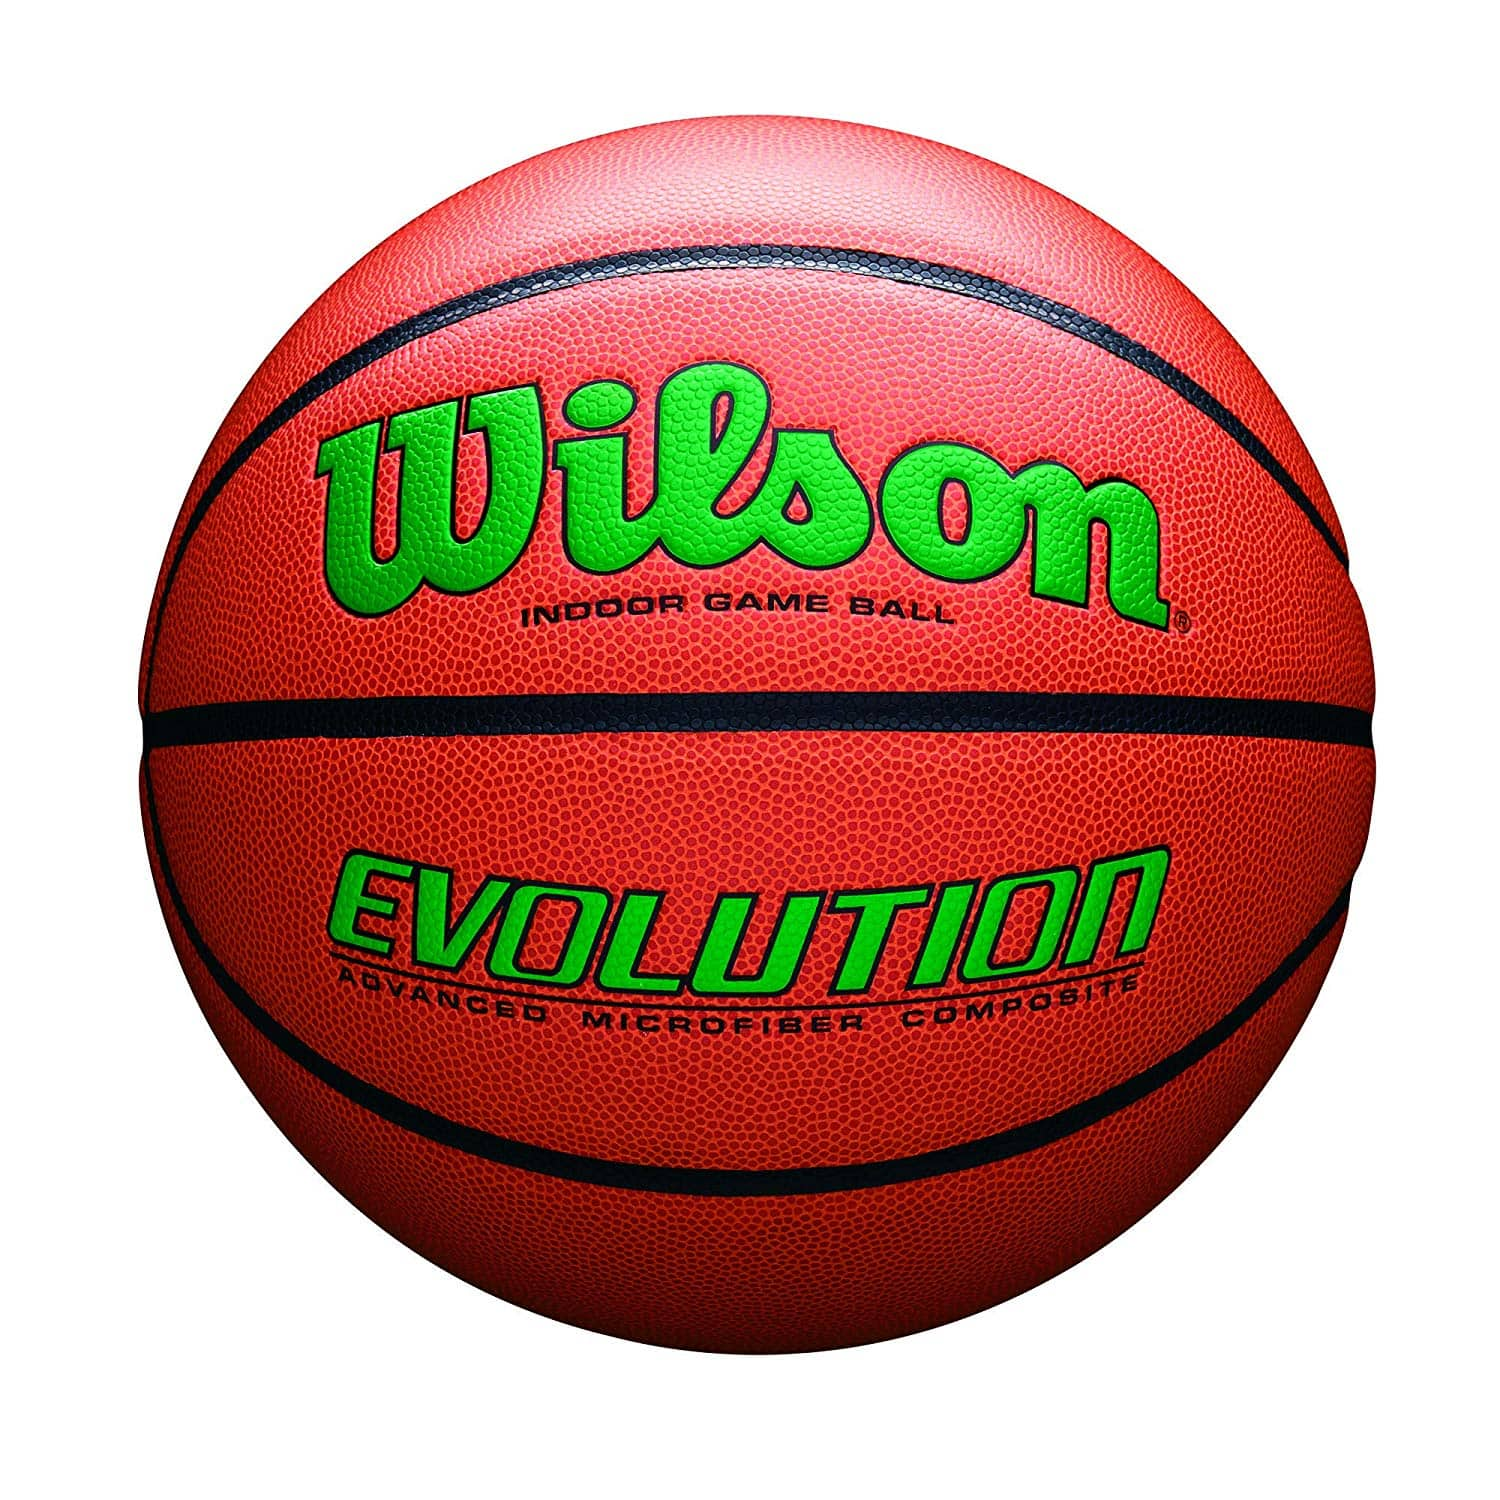 Colored Wilson Evolution Basketballs - $38.96 @Amazon